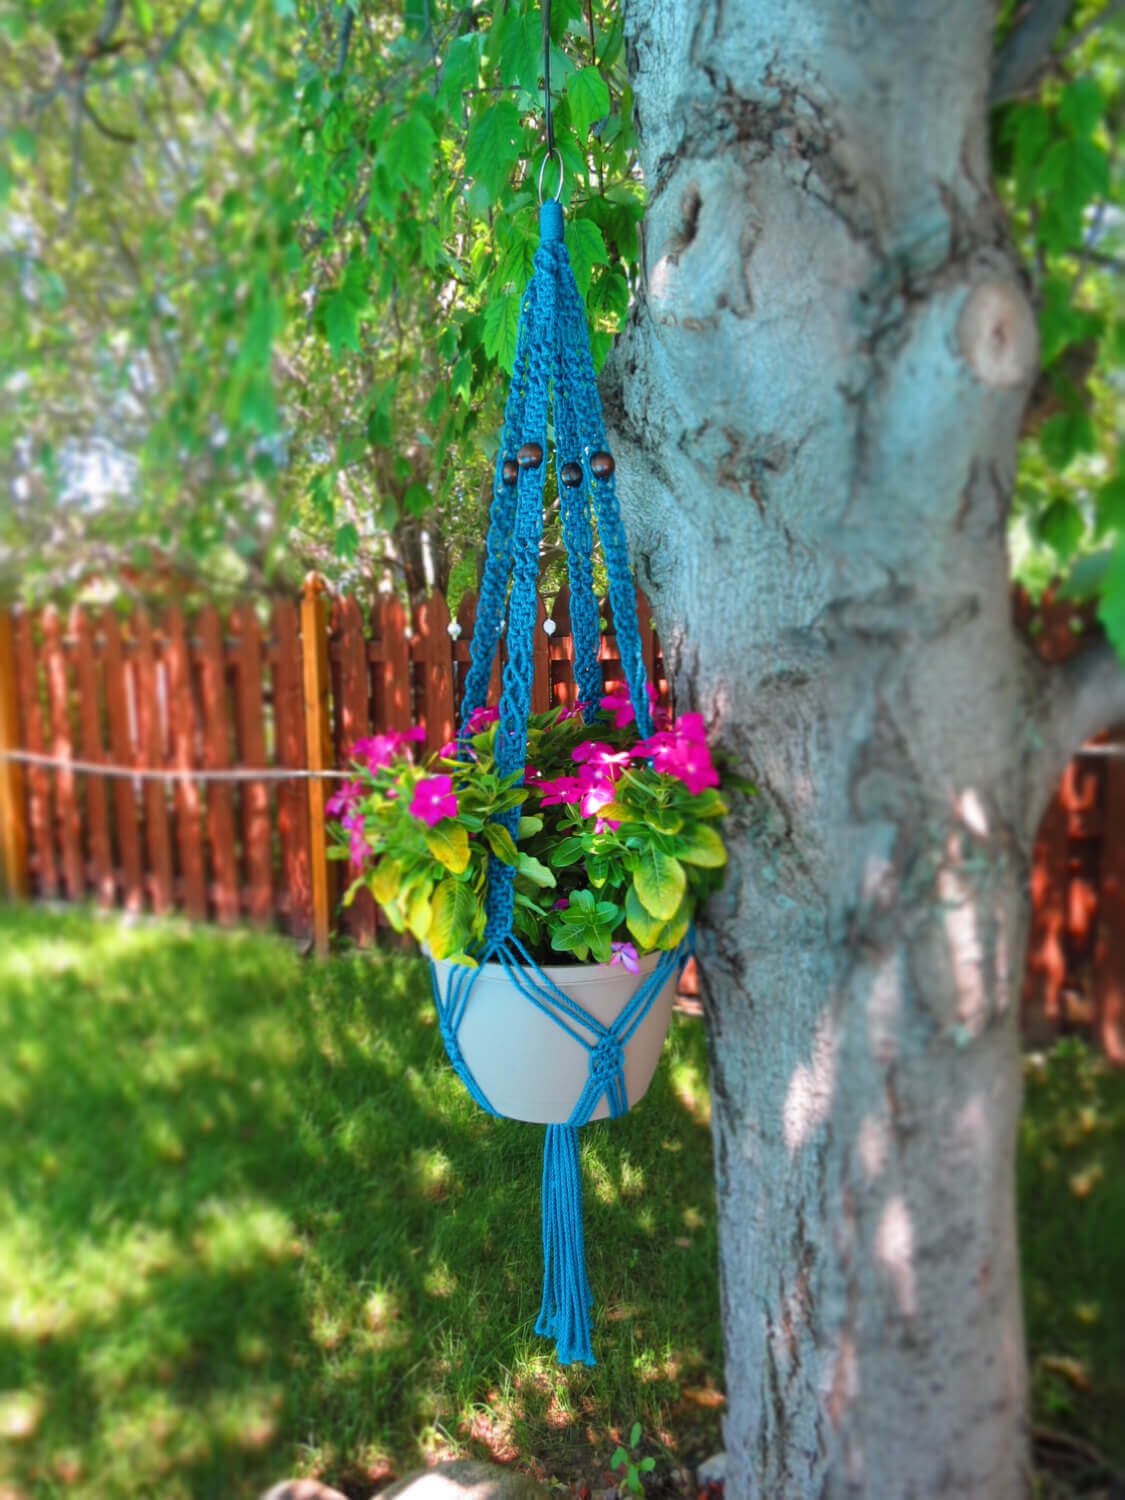 45 Best Outdoor Hanging Planter Ideas and Designs for 2018